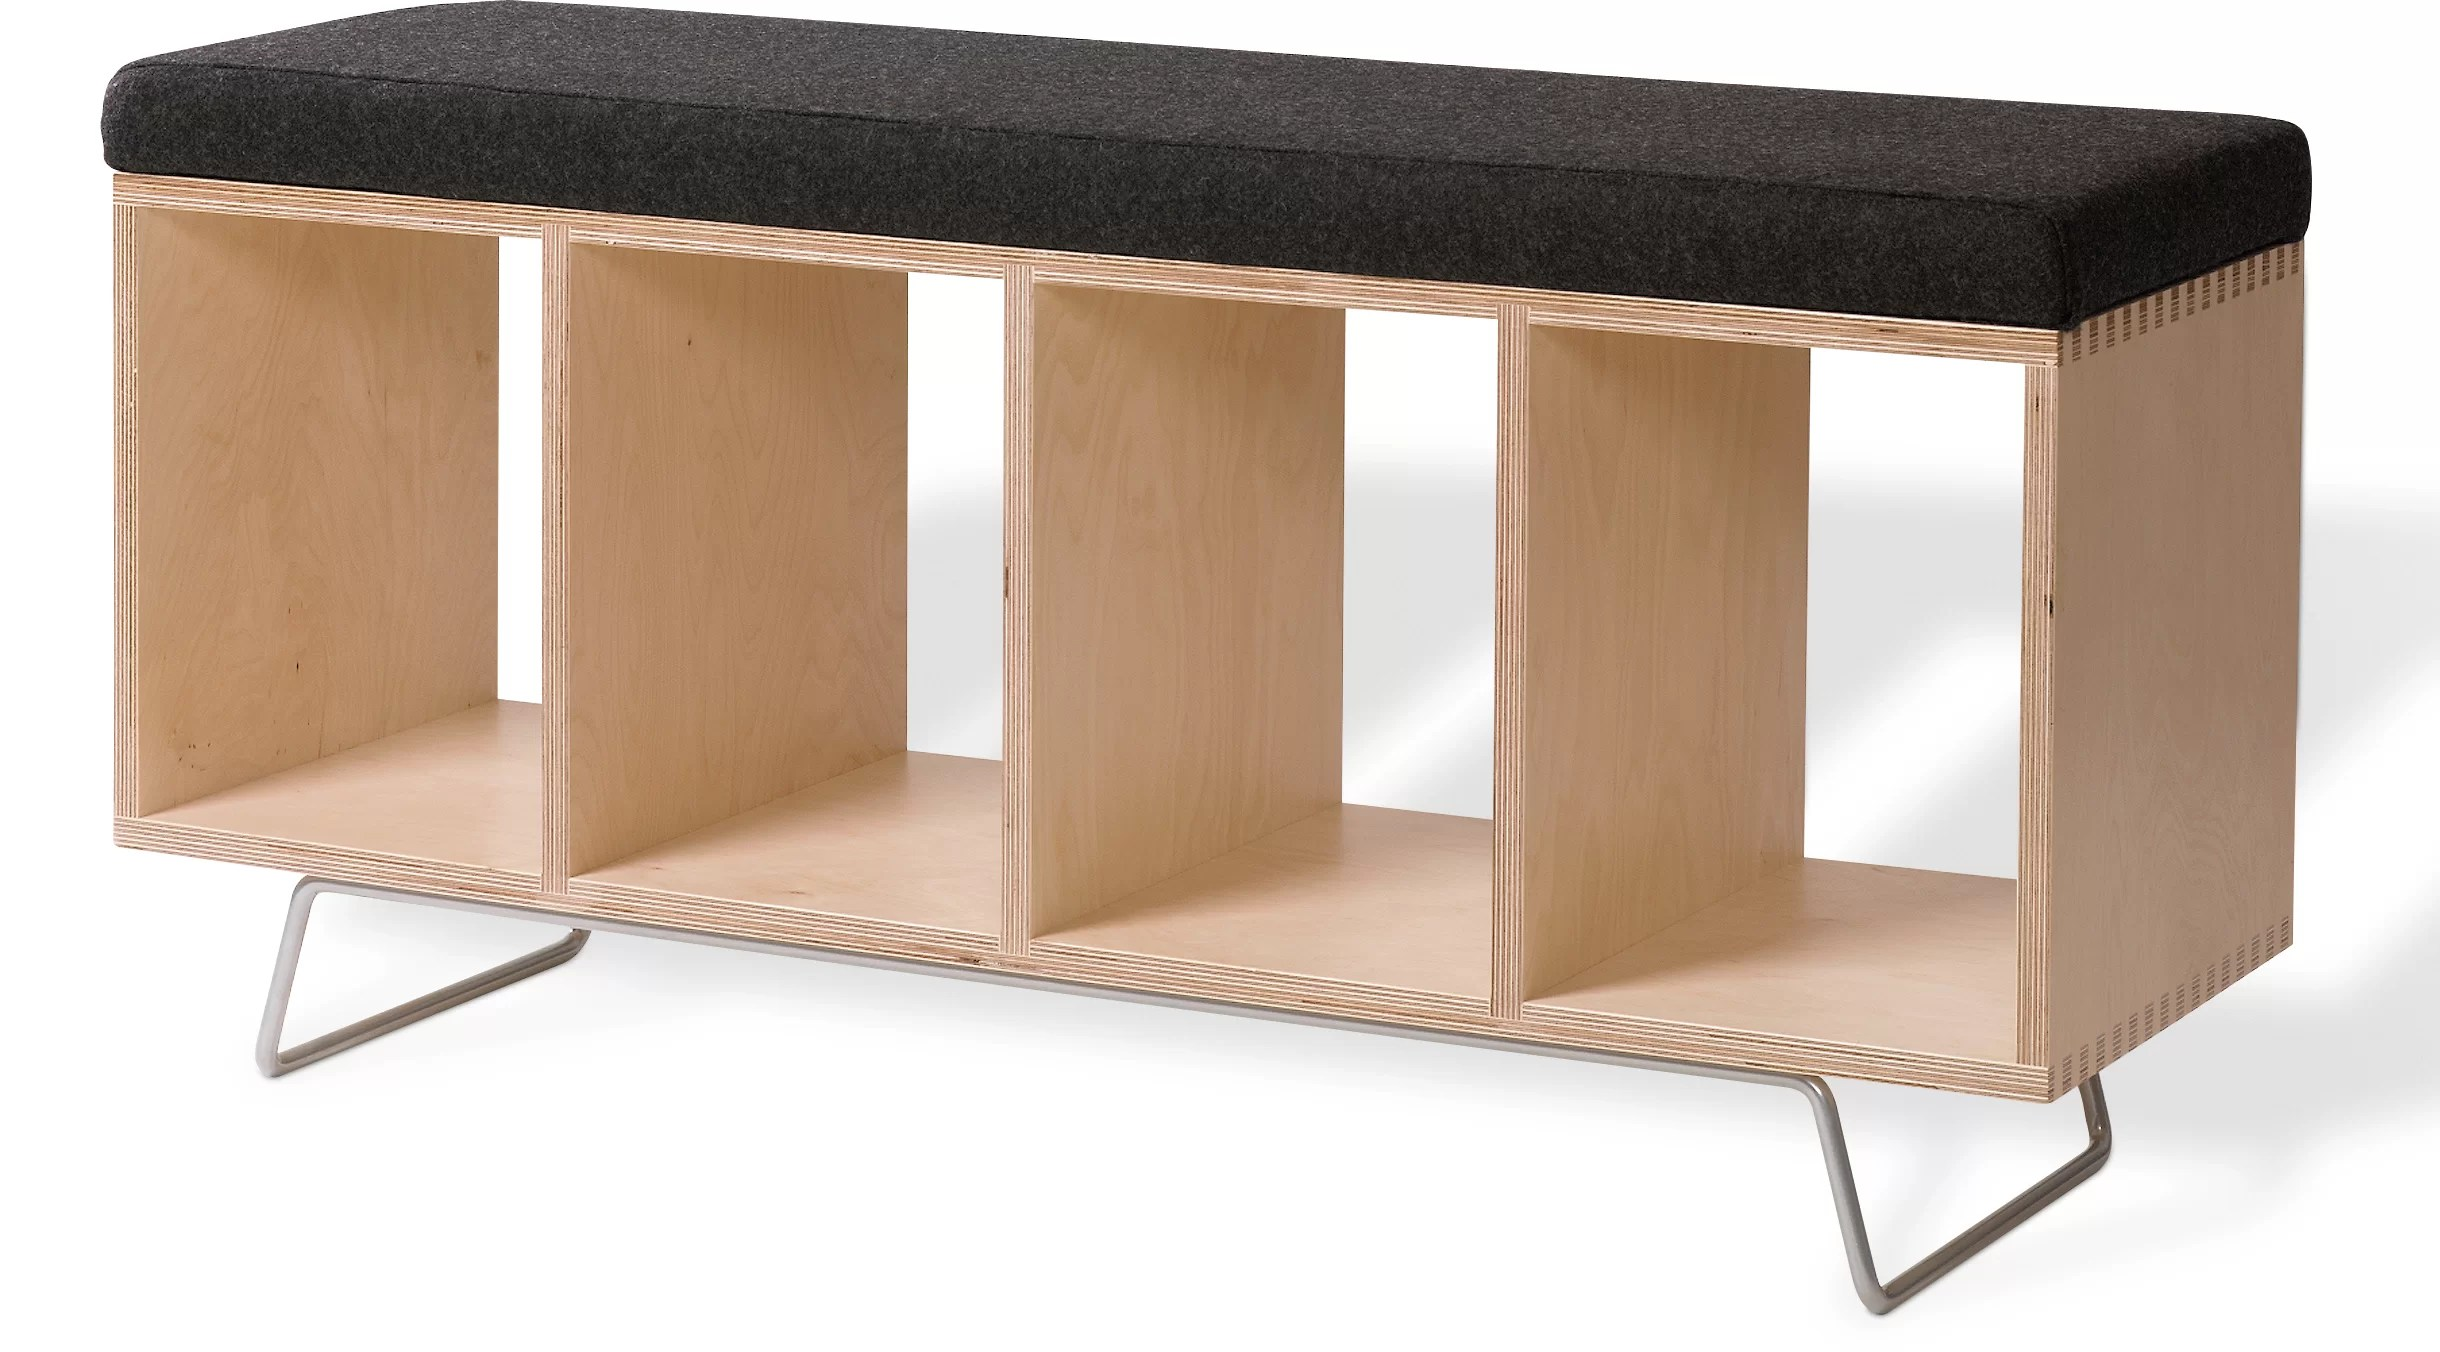 Wooden Storage Bench Birch Wooden Storage Bench